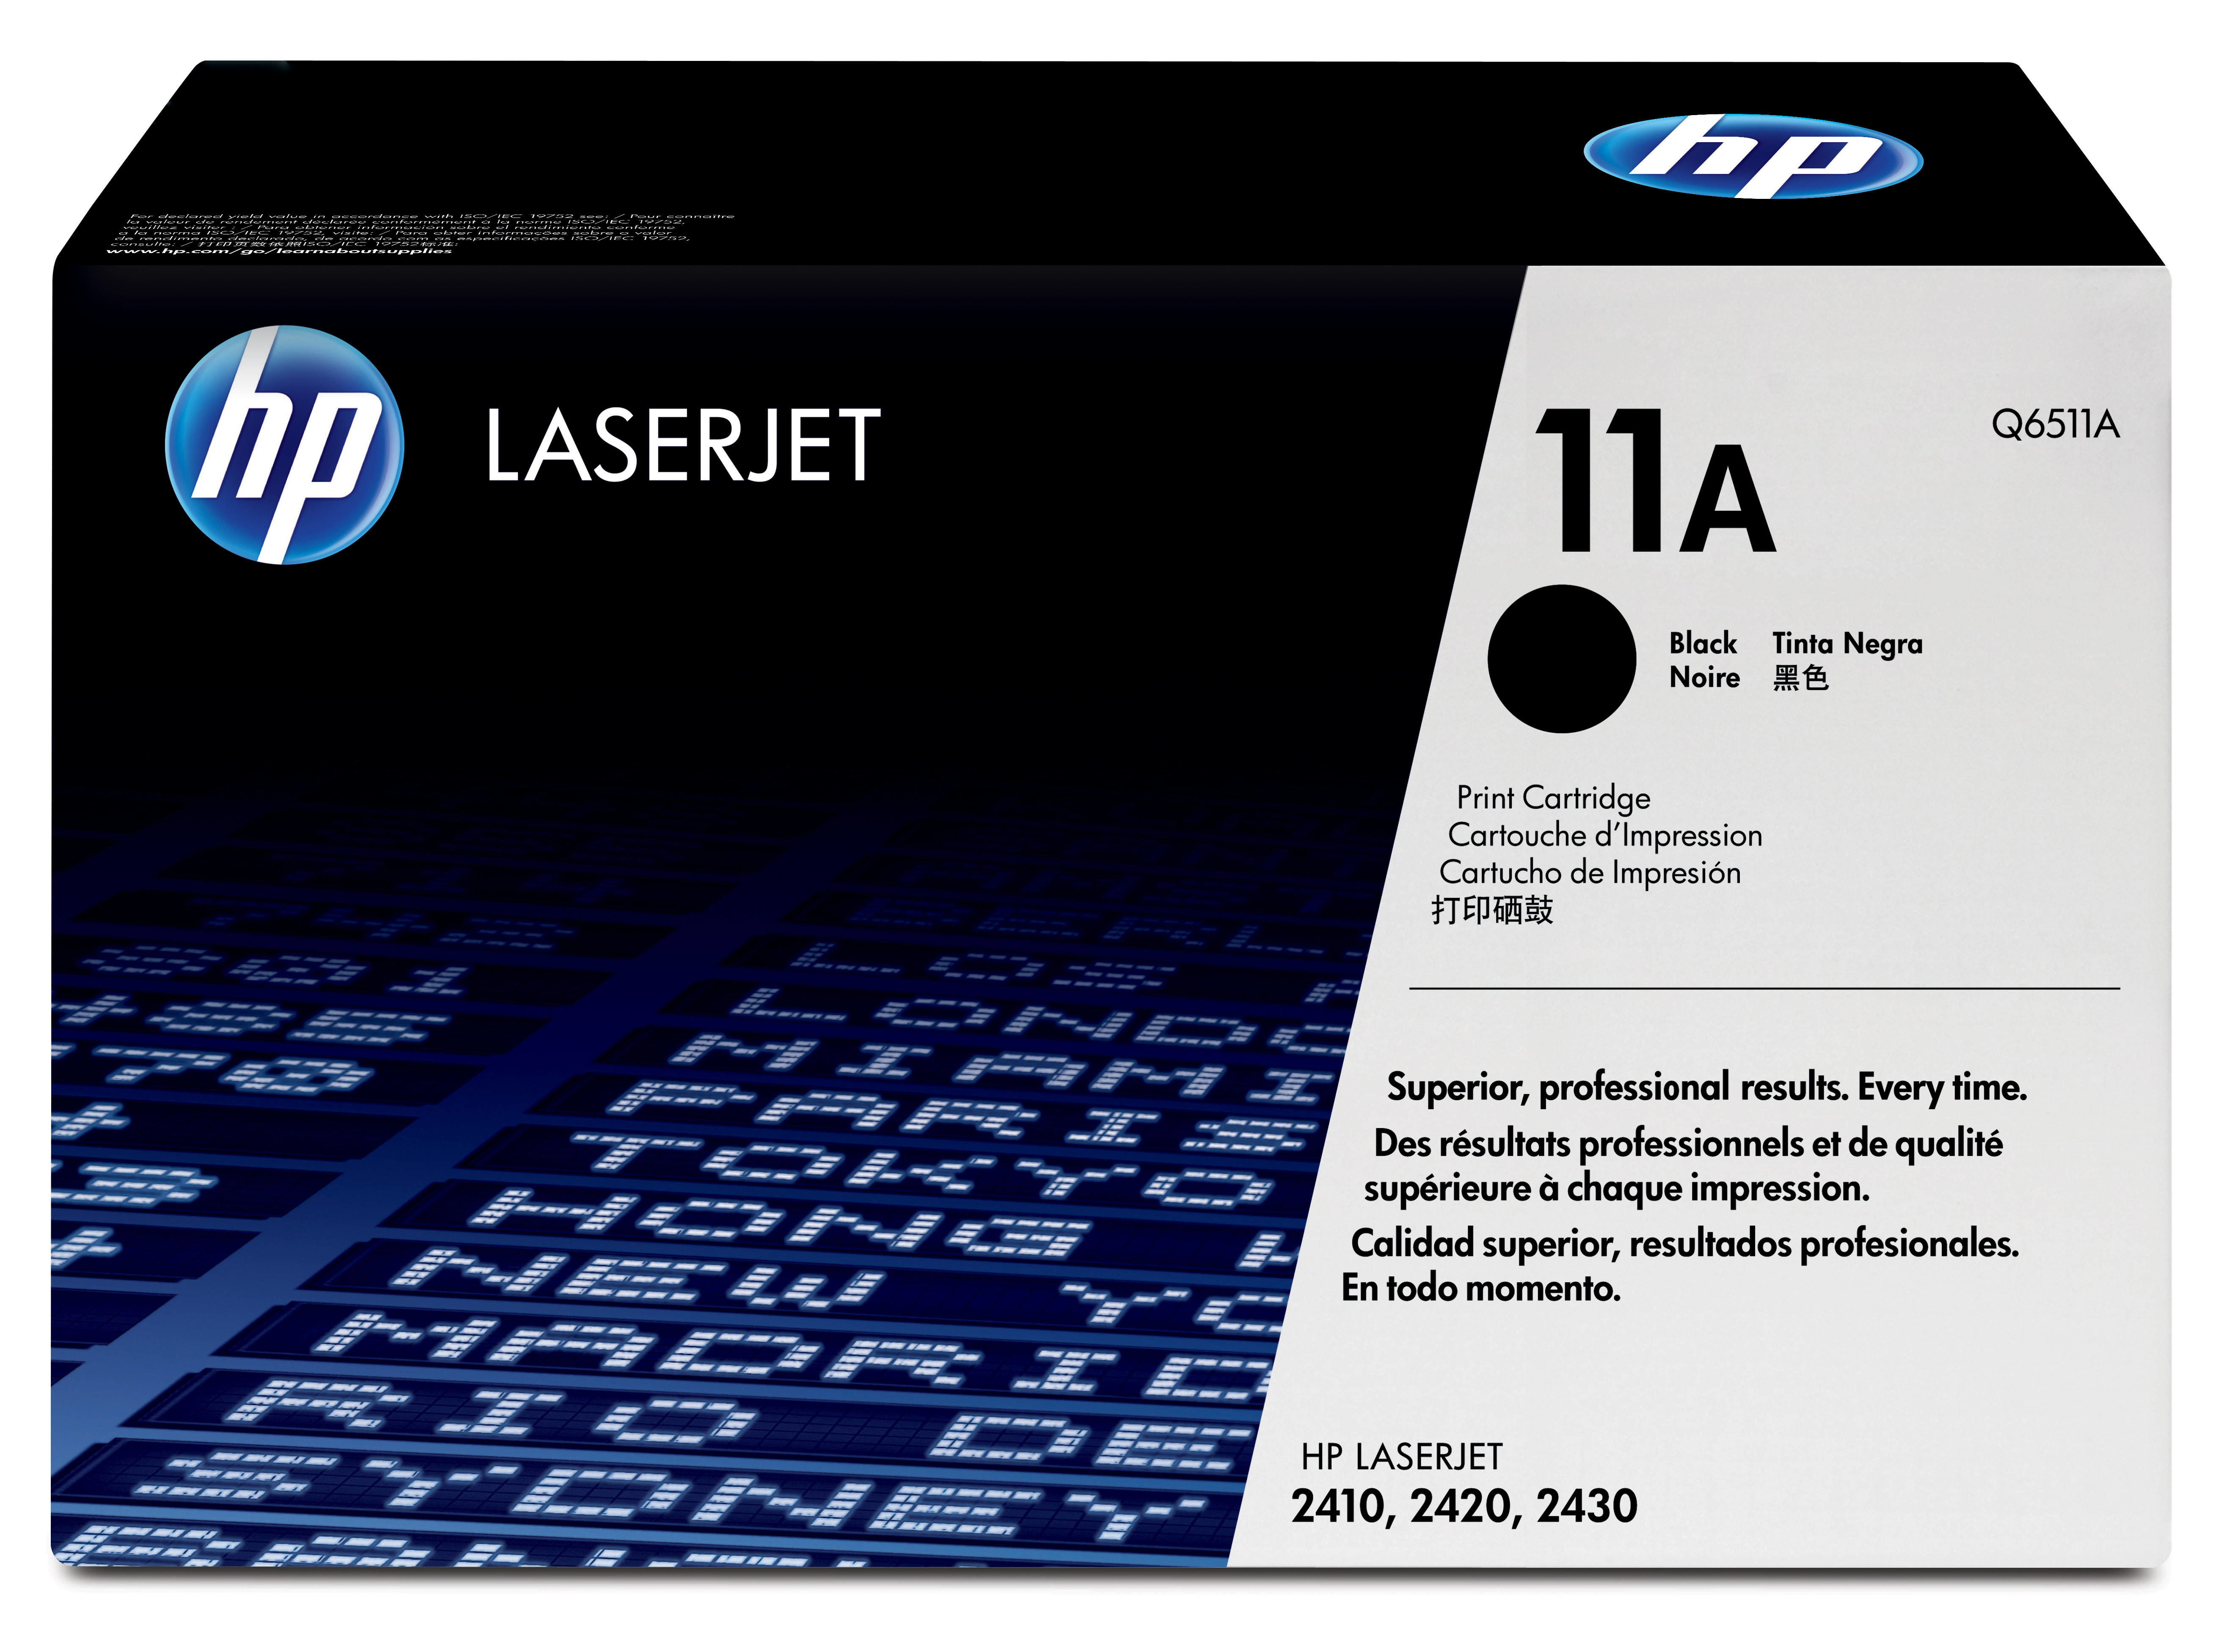 Remanufactured HP Q6511A Toner Cartridge Black 6K Q6511A - rem01